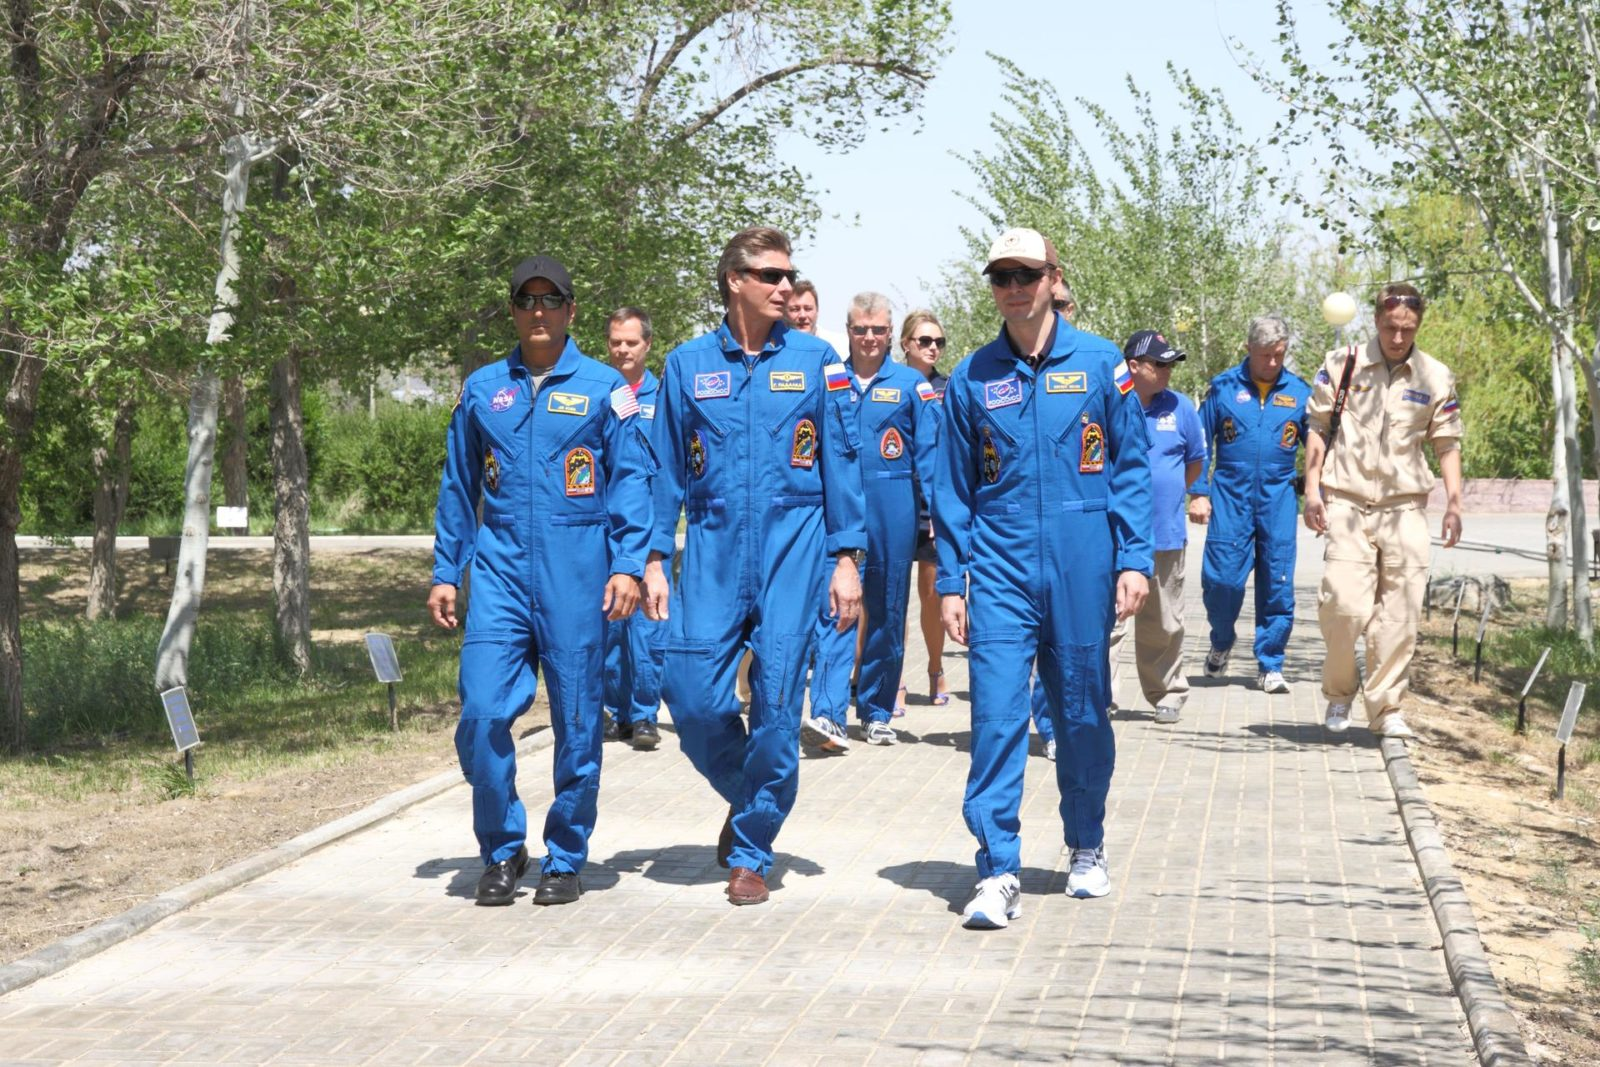 At their Cosmonaut Hotel crew quarters in Baikonur, Kazakhstan, the next trio of crewmembers who will launch to the International Space Station take a traditional stroll down the Walk of the Cosmonauts May 10, 2012 as they take break from final pre-launch training.  From left to right in the foreground are Expedition 31/32 Flight Engineer Joe Acaba of NASA, Soyuz Commander Gennady Padalka and Flight Engineer Sergei Revin, who enjoyed balmy weather as they wrap up preparations for launch May 15 on the Soyuz TMA-04M spacecraft from the Baikonur Cosmodrome to begin a four-month mission on the international outpost.  NASA/Victor Zelentsov jsc2012e051255